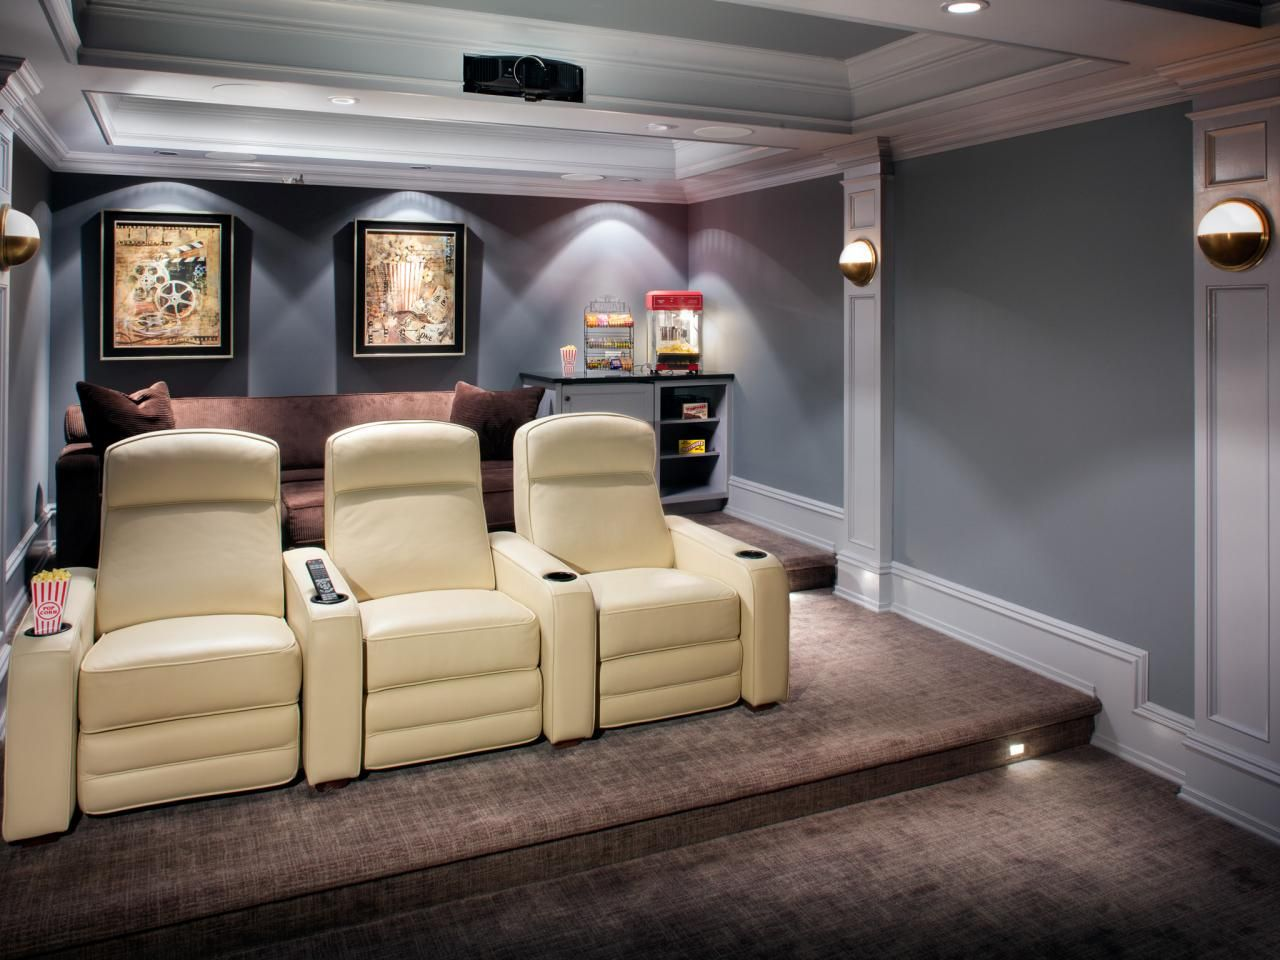 Simple theater with hidden projector in ceiling. The way ...